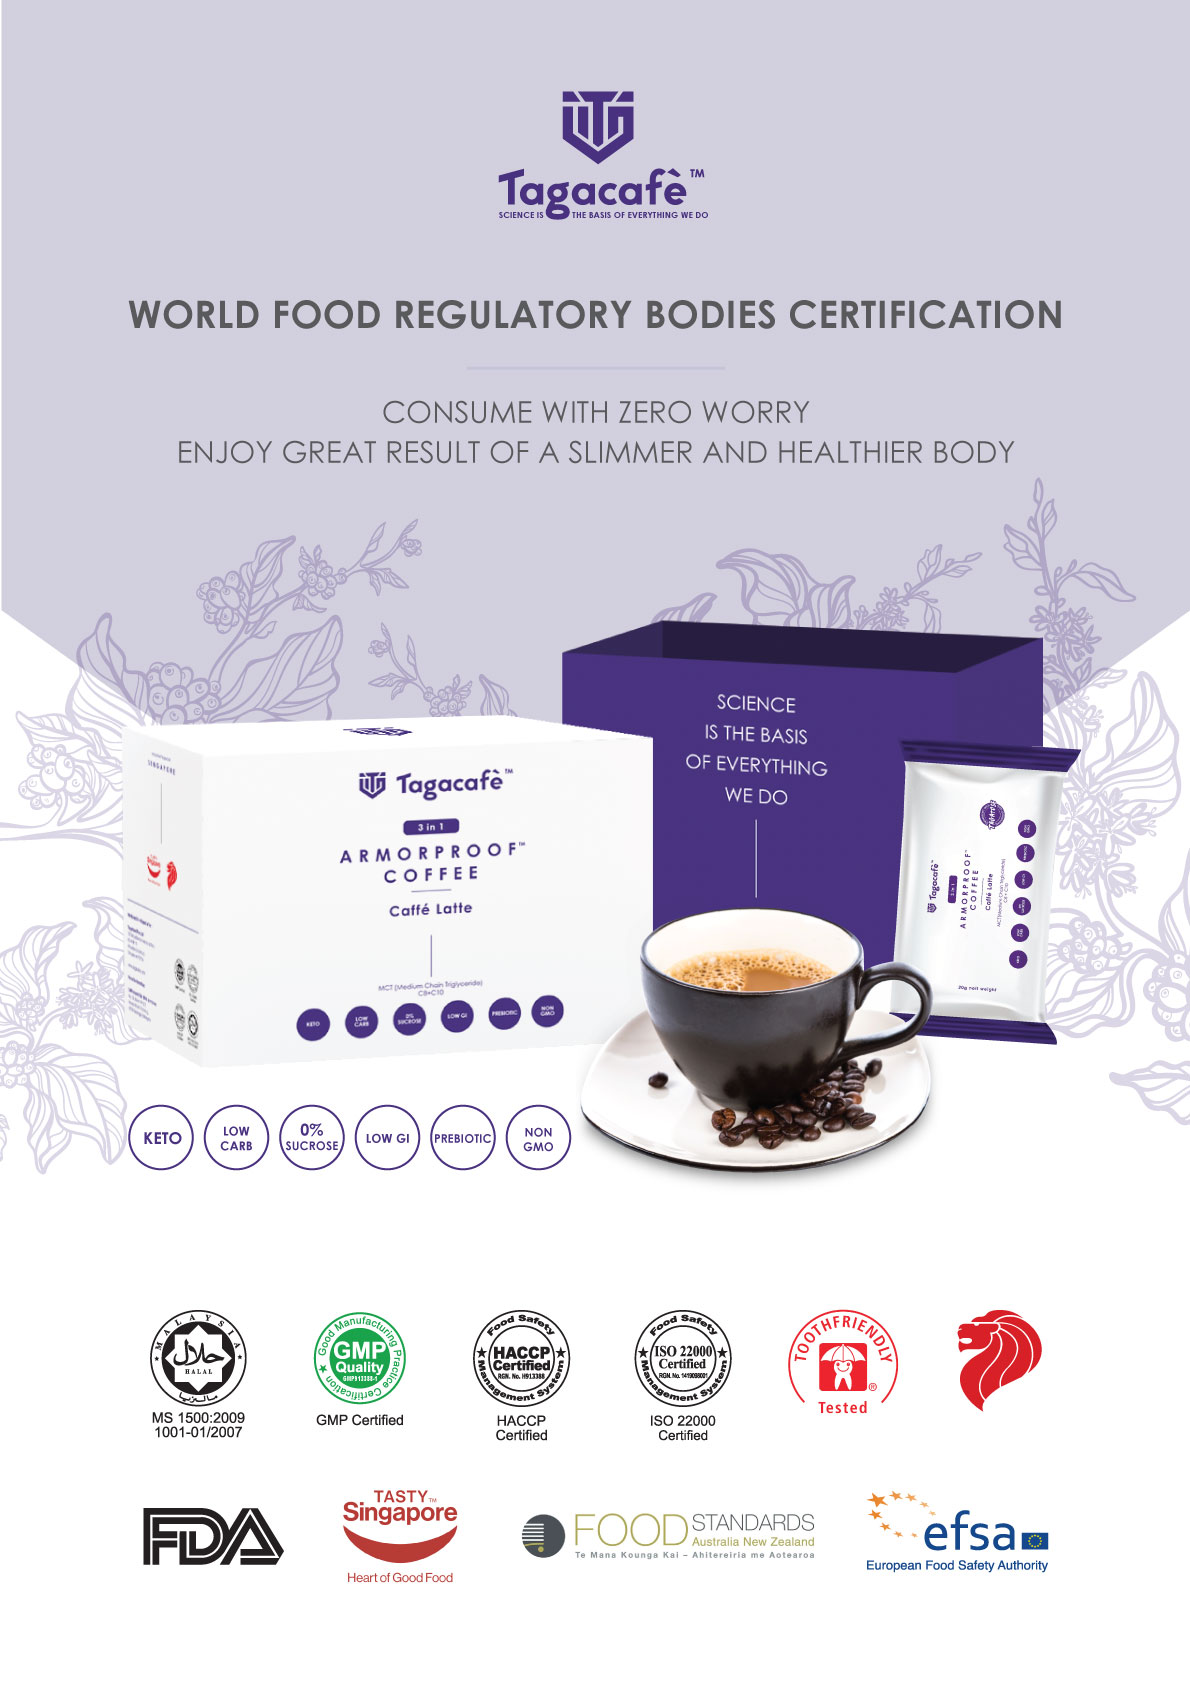 Tagacafè, Armorproof Coffee, Coffee, Cafe Latte, Low Carb, Low Glycemic Index, KETO, Low Carb High Fat (LCHF) diets, weight management, HDL, lean muscles for athletes, Anti-aging, Low in cholesterol and carbohydrates, Halal, Anmyna Online